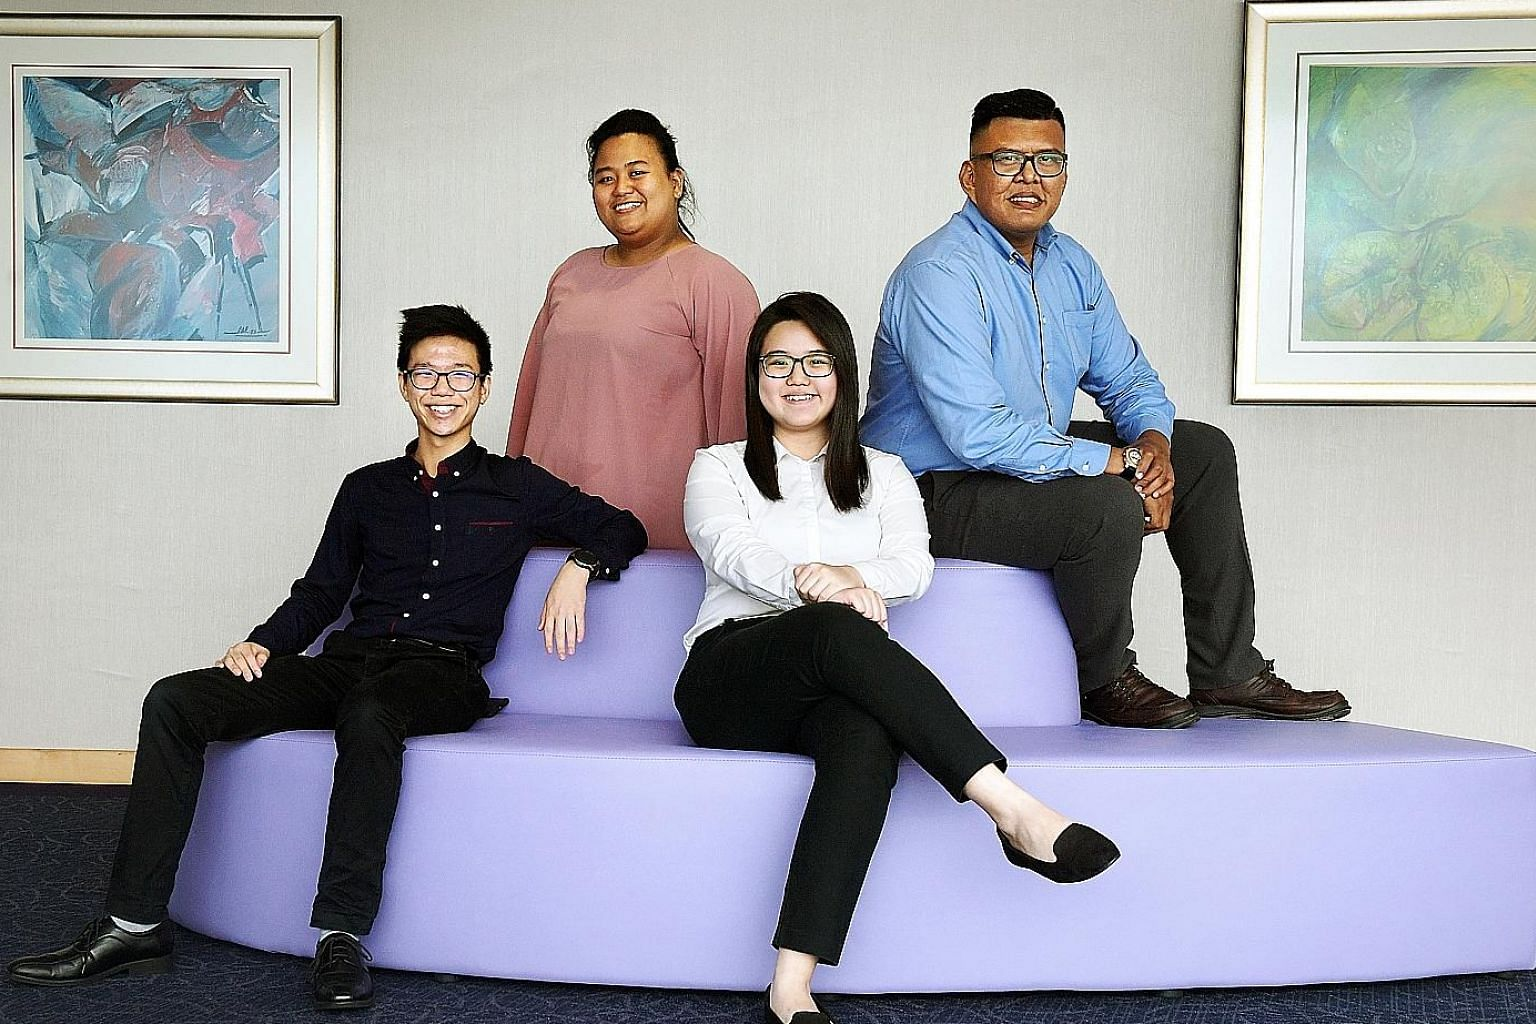 ITE graduates who received awards included (from left) Mr Nathaniel Neo, 19, winner of the IES Engineering Award; Ms Siti Nurhajah Haron, 24, and Ms Nicole Goh, 18, who were both given the Lee Kuan Yew Gold Medal; and Mr Muhammad Khairul Johari Jumah